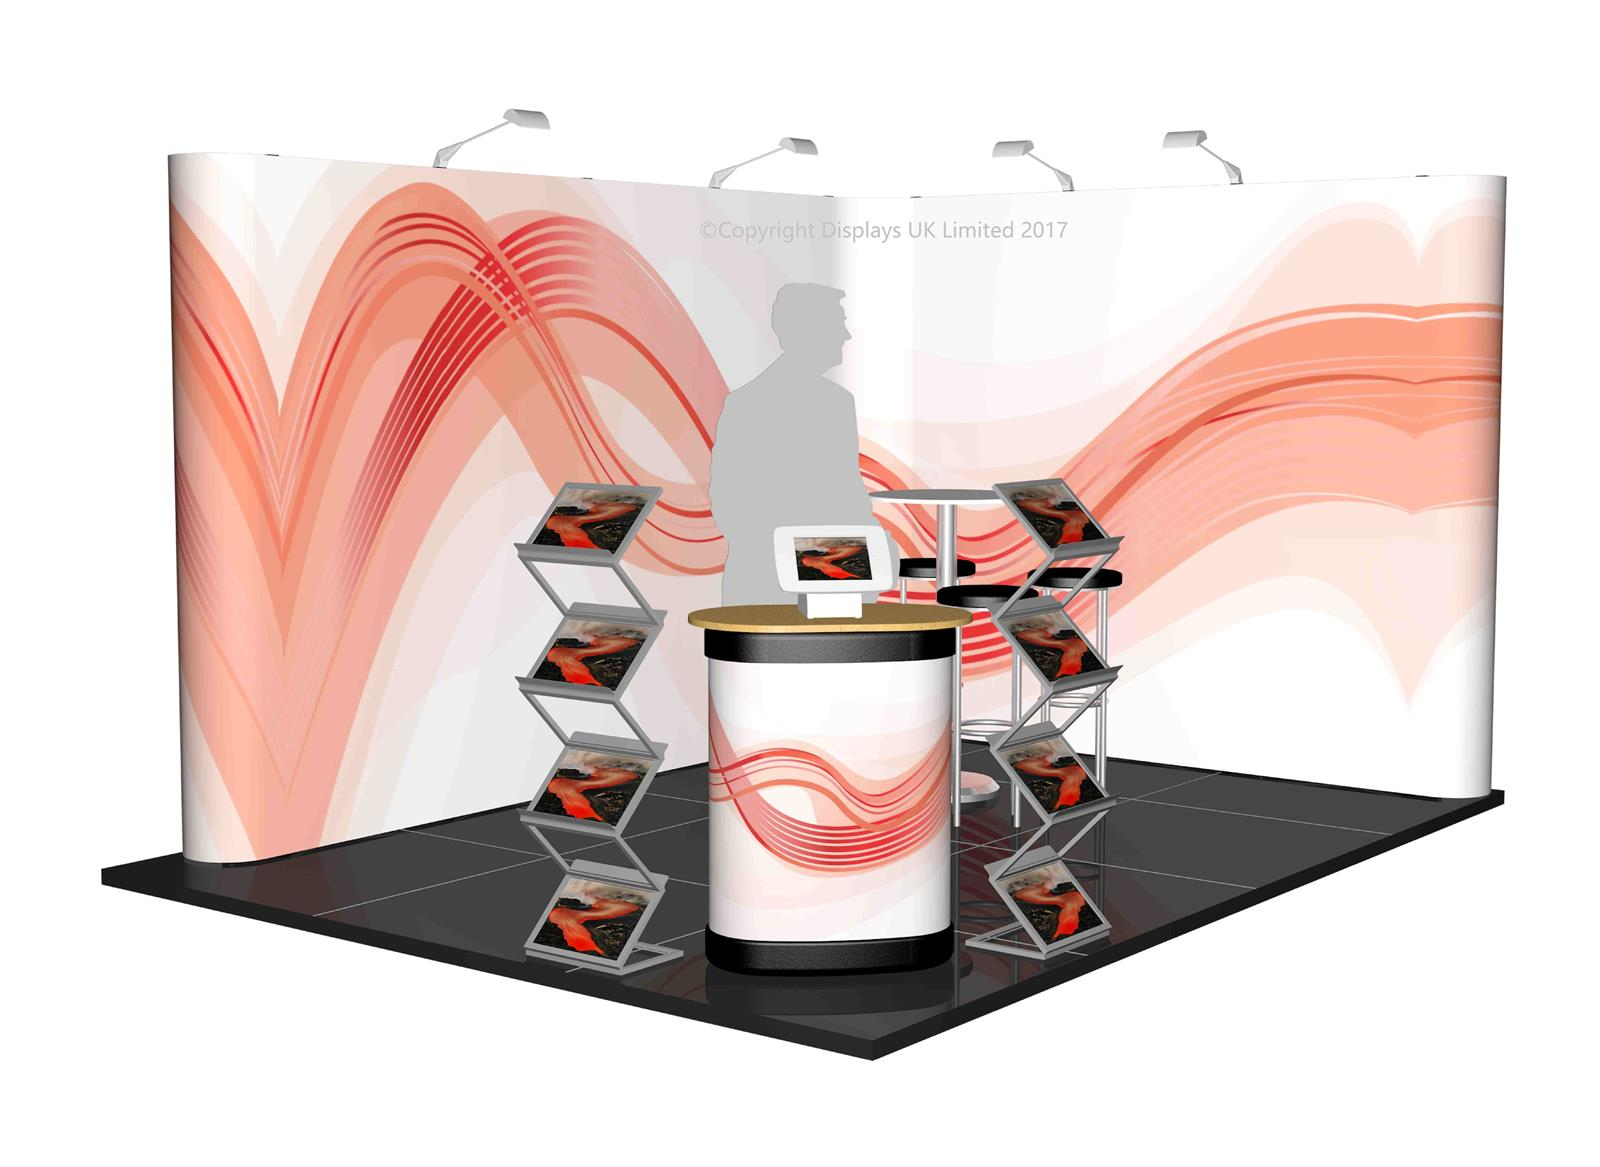 3m x 4m Linked Pop Up Exhibition Stand - Kit 21 - P4x3-2aS